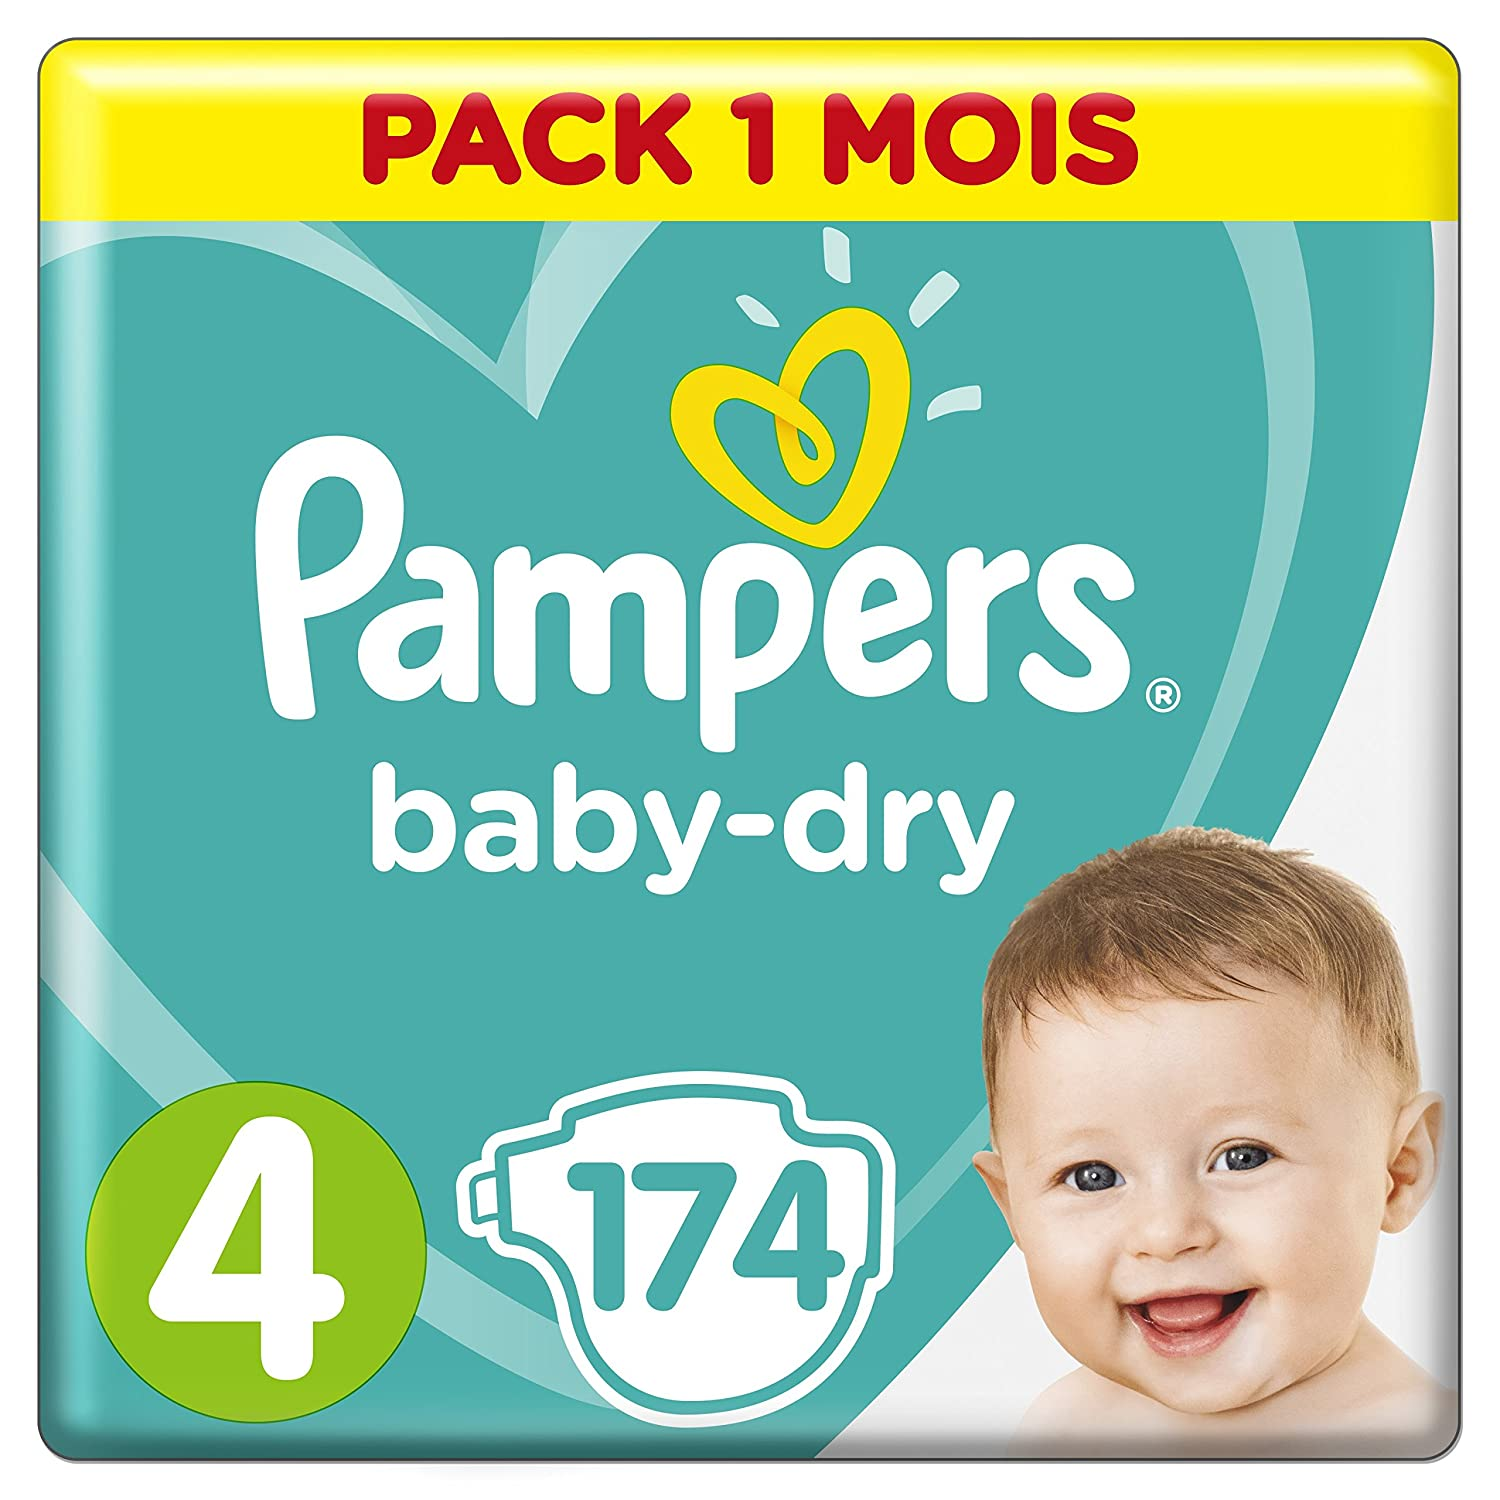 Pampers baby dry couches taille 4 9 14 kg pack 1 mois pampers baby dry couches taille 4 9 14 kg pack 1 mois x174 couches amazon hygine et soins du corps fandeluxe Images